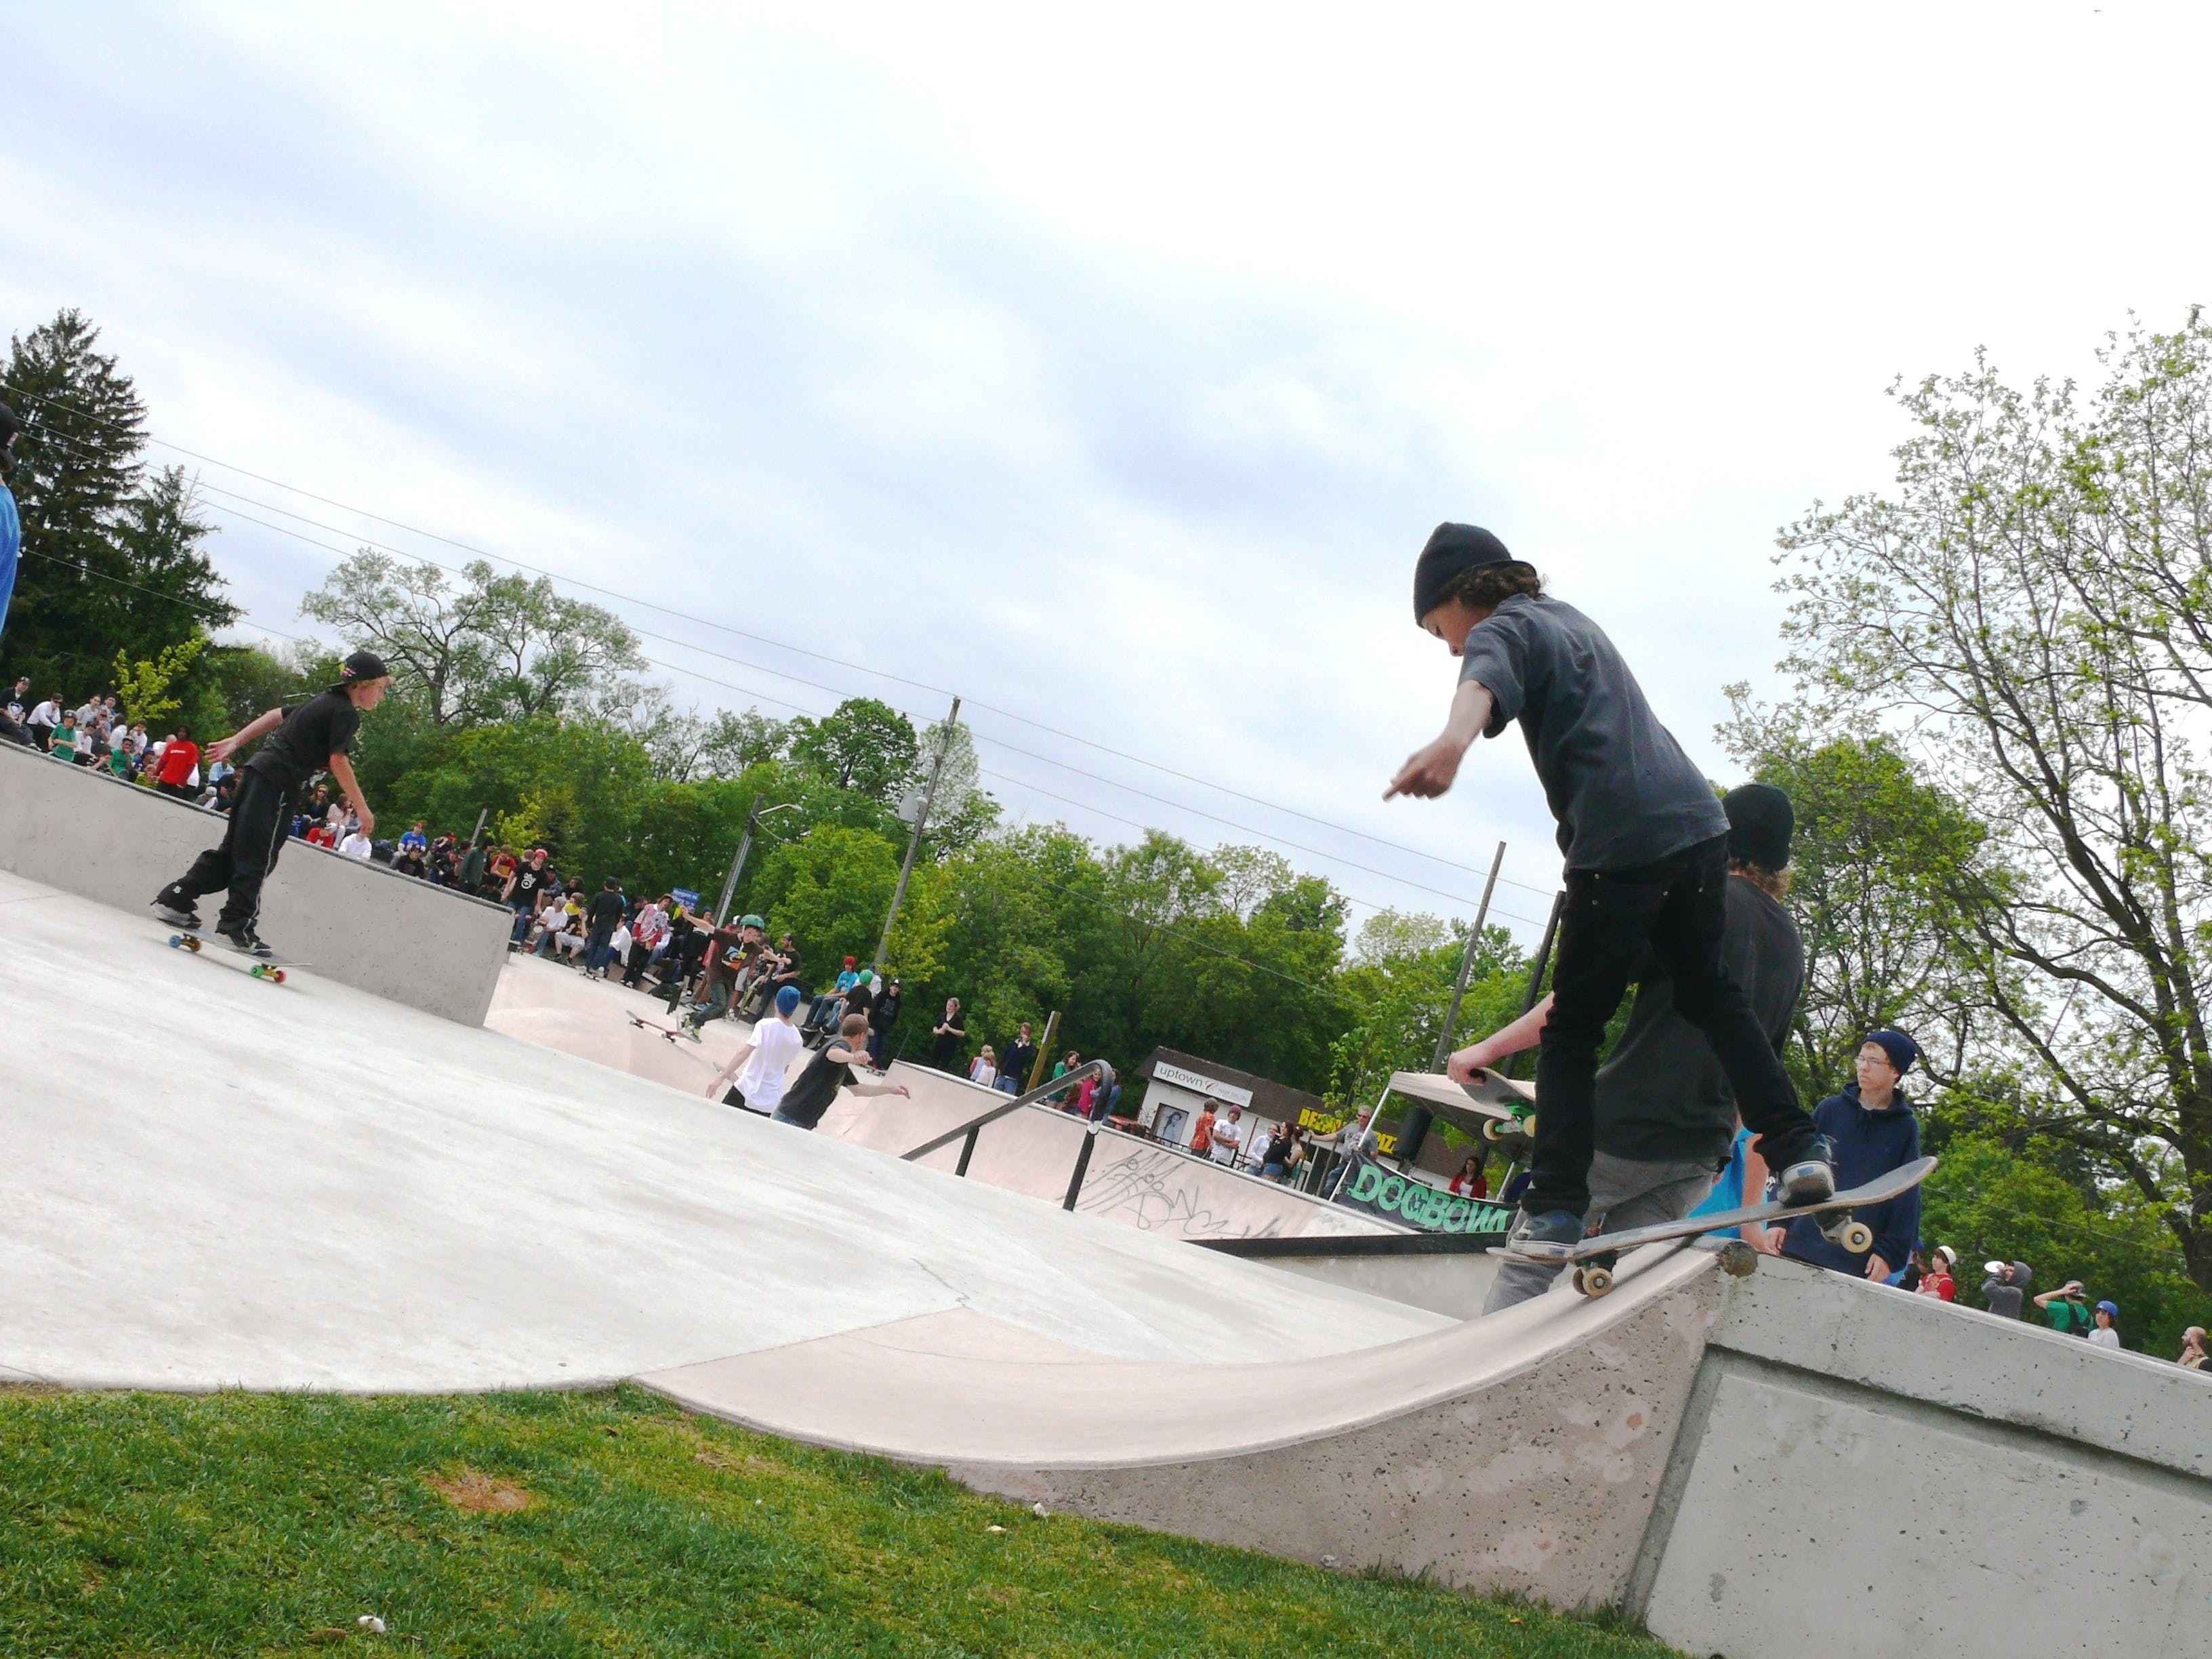 Youth skateboarding at an Oshawa park